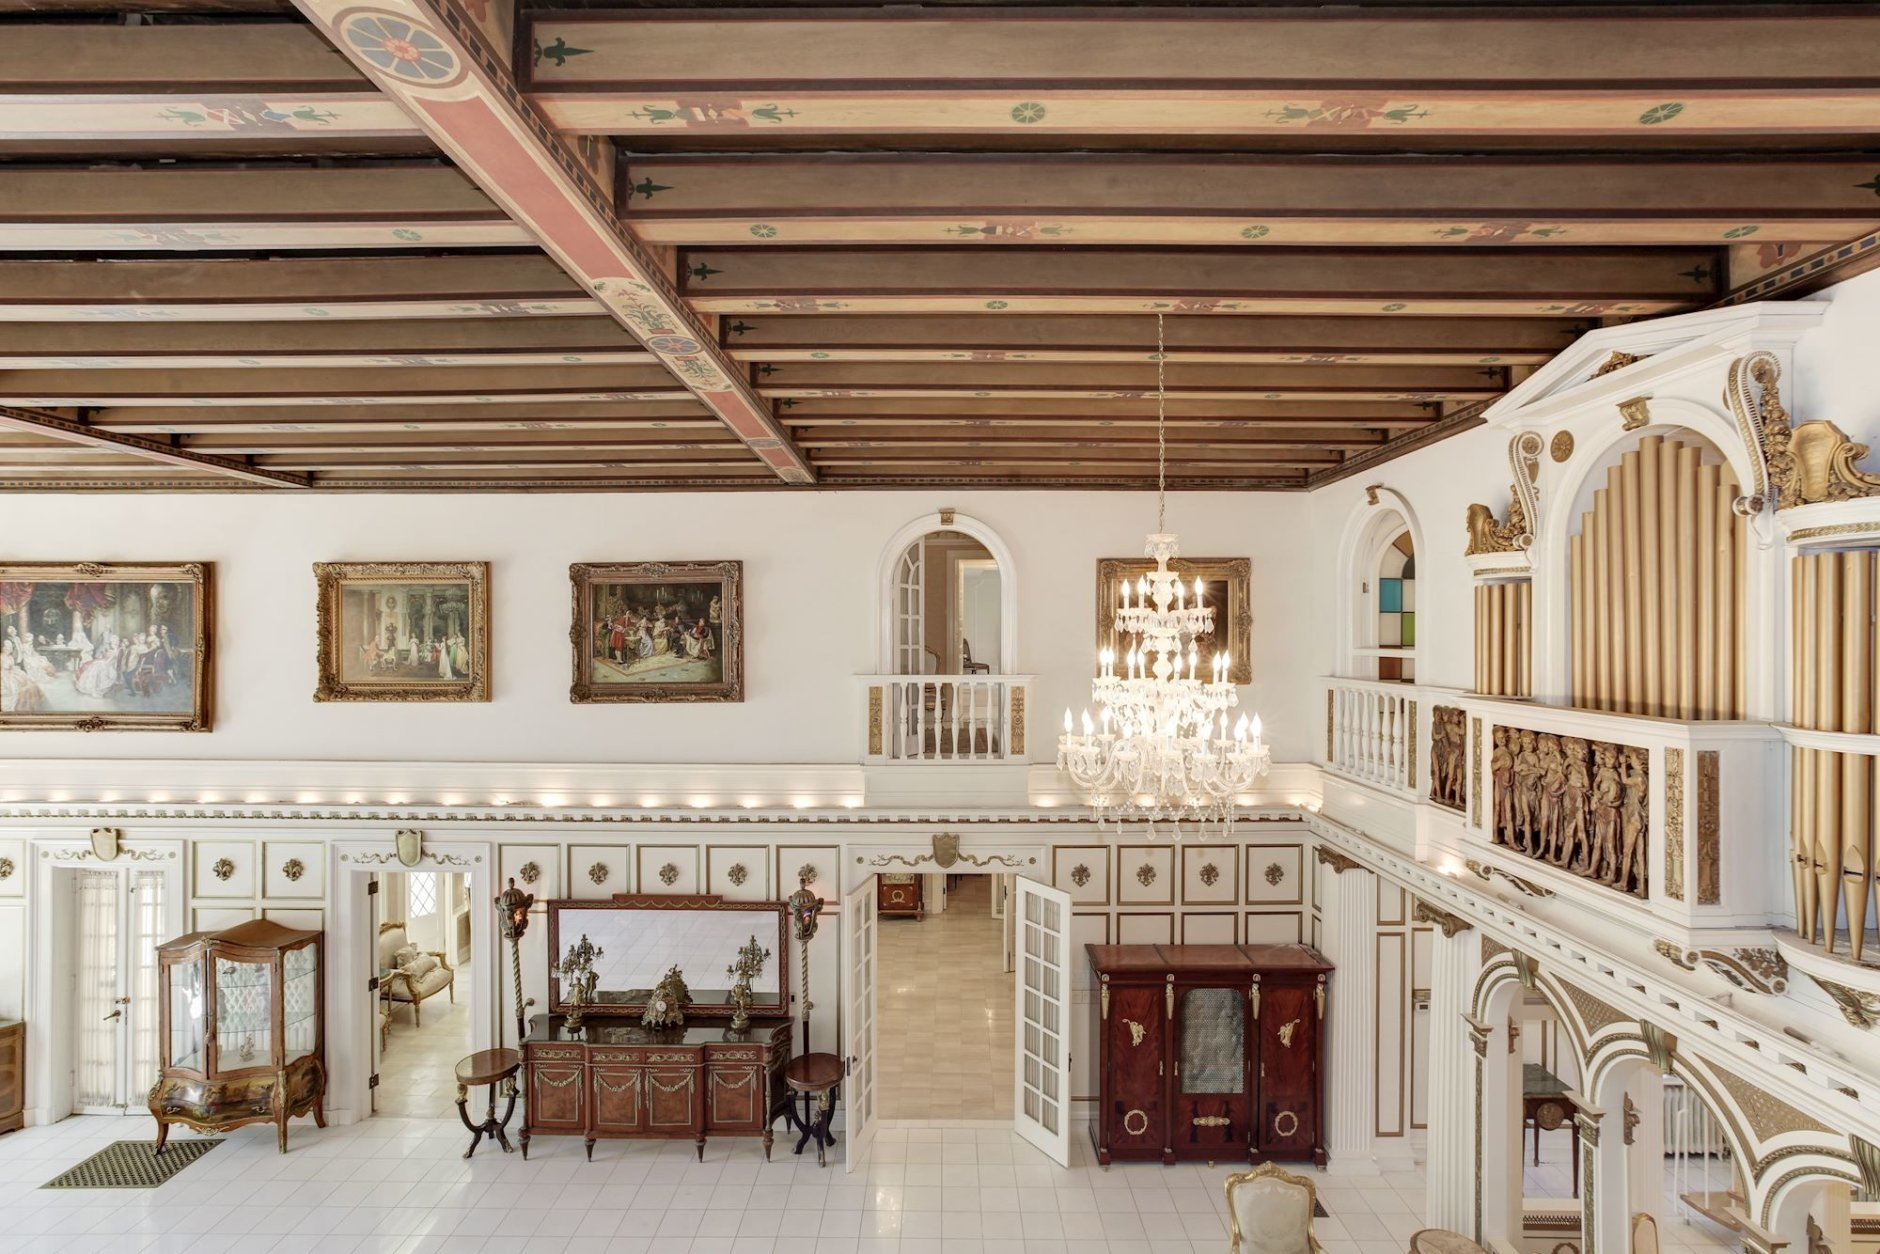 The Elizabethan-style manor has retained many of its period features and custom architectural details, including carved moldings and paneled walls. (Courtesy Long & Foster)